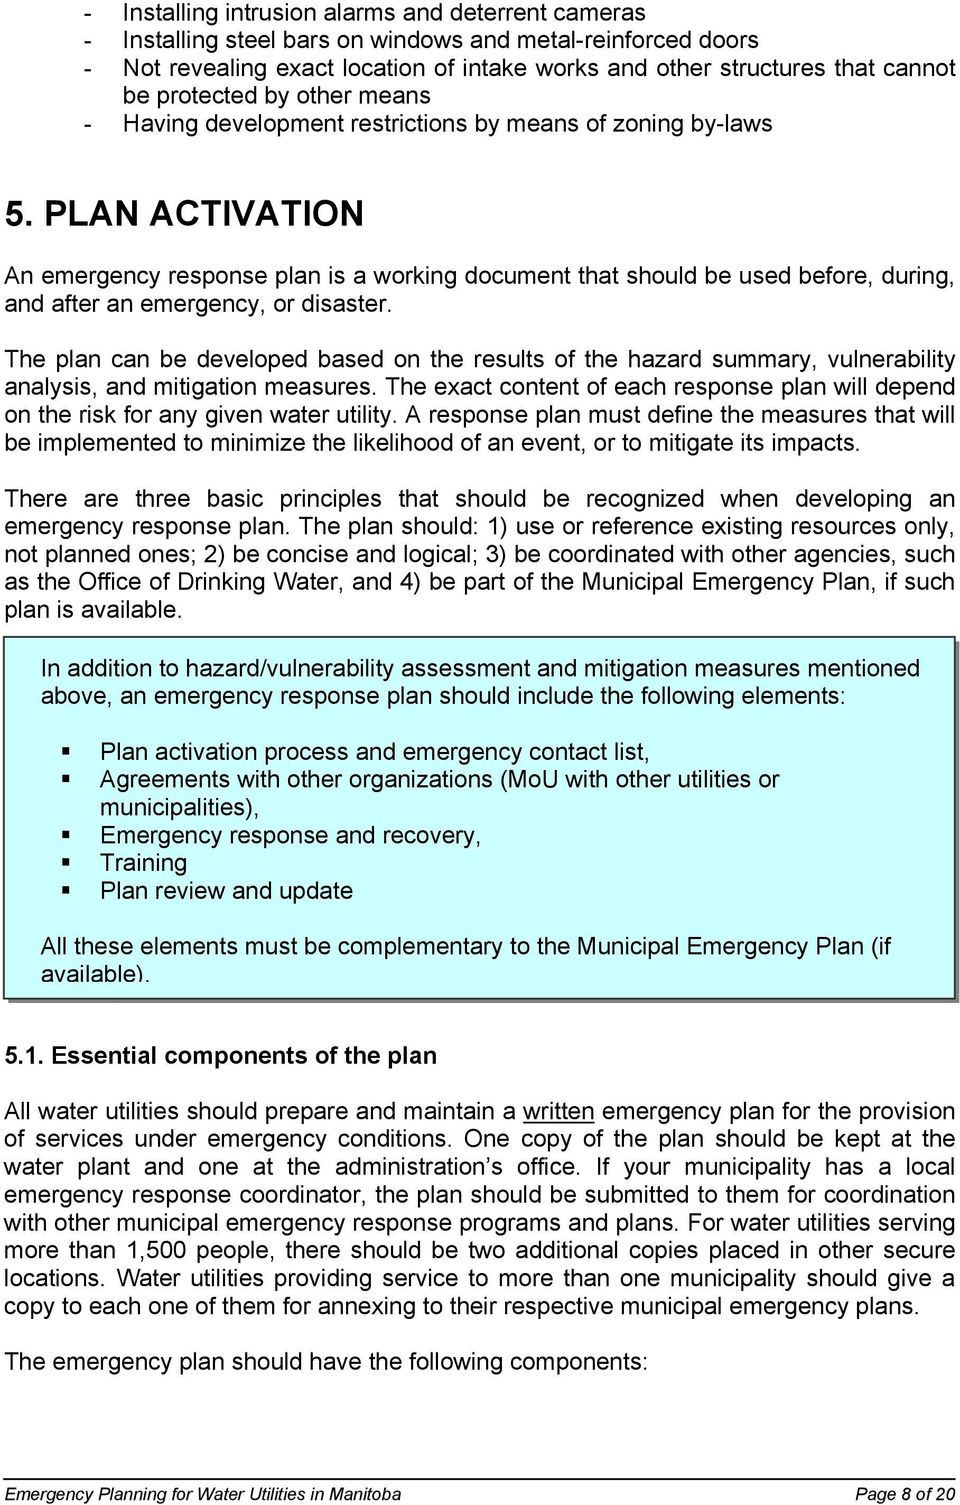 PLAN ACTIVATION An emergency response plan is a working document that should be used before, during, and after an emergency, or disaster.